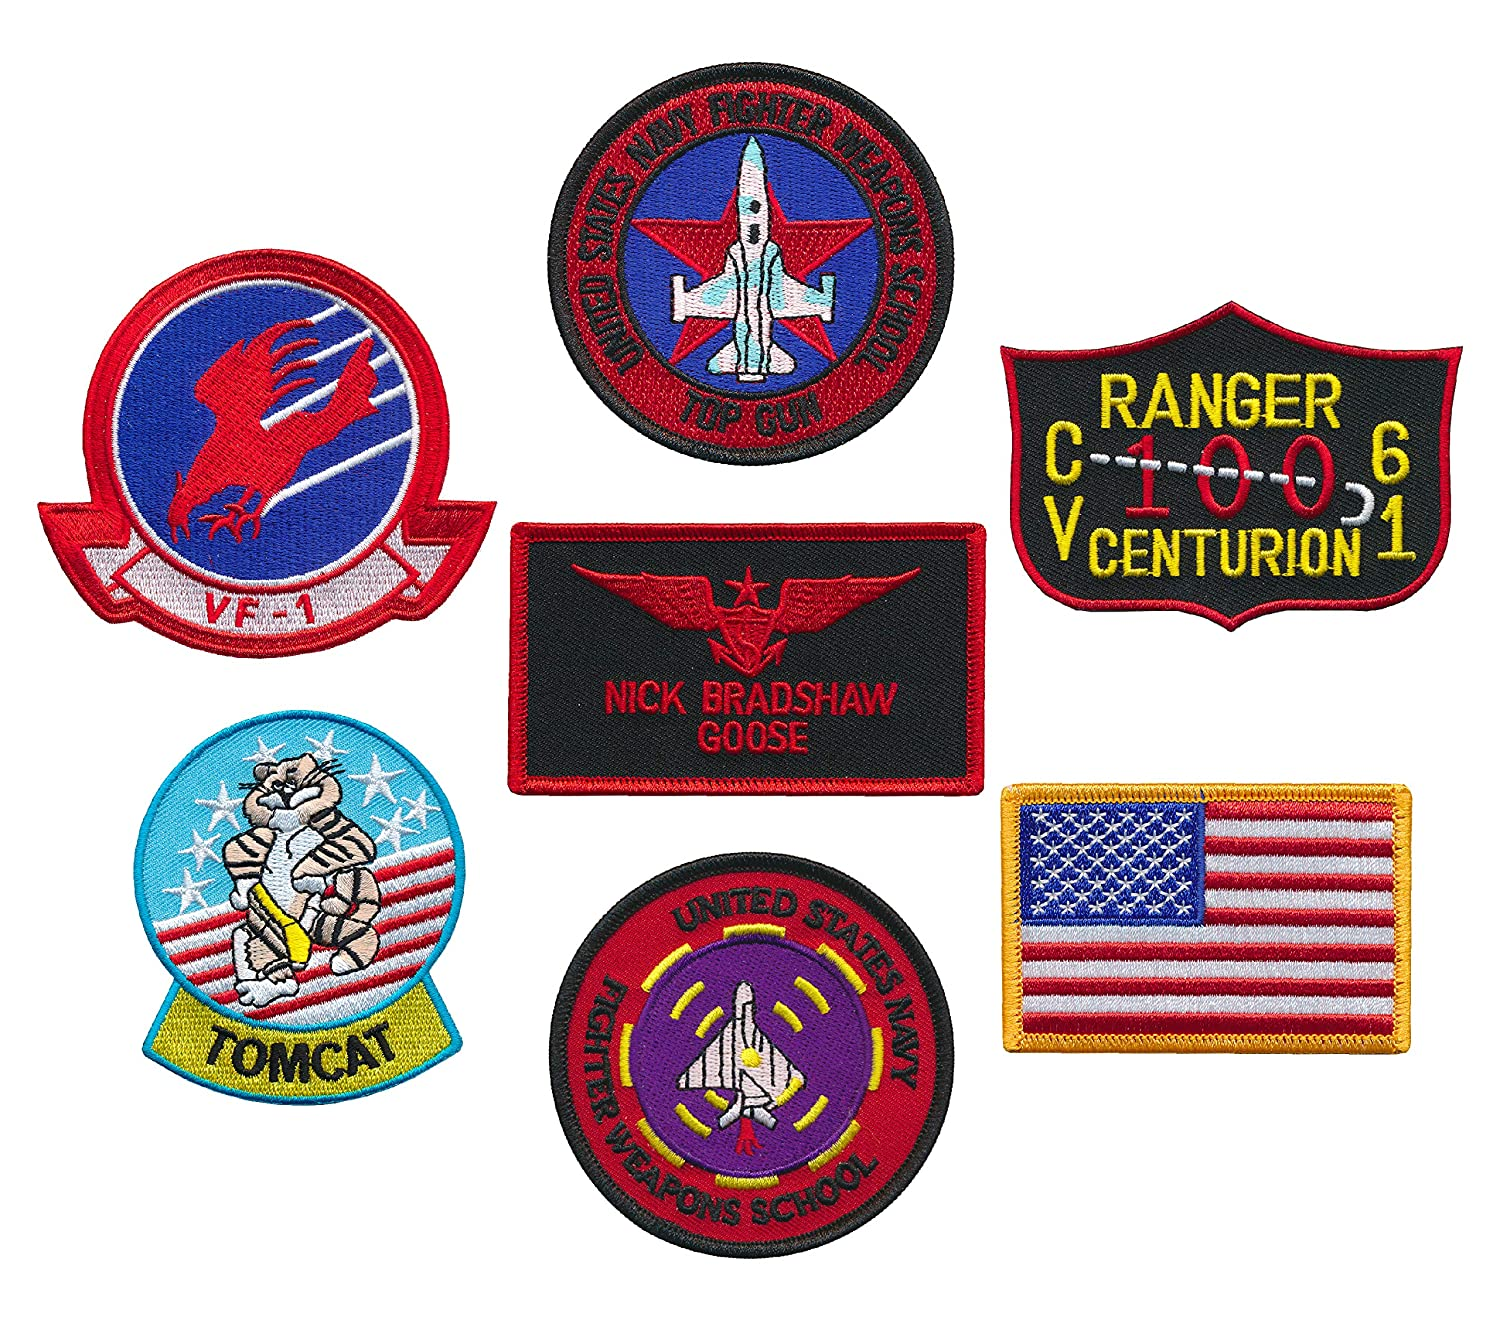 US Naval Aviator Top Gun Fighter Tactics Patch set of 6 and a FREE Patch